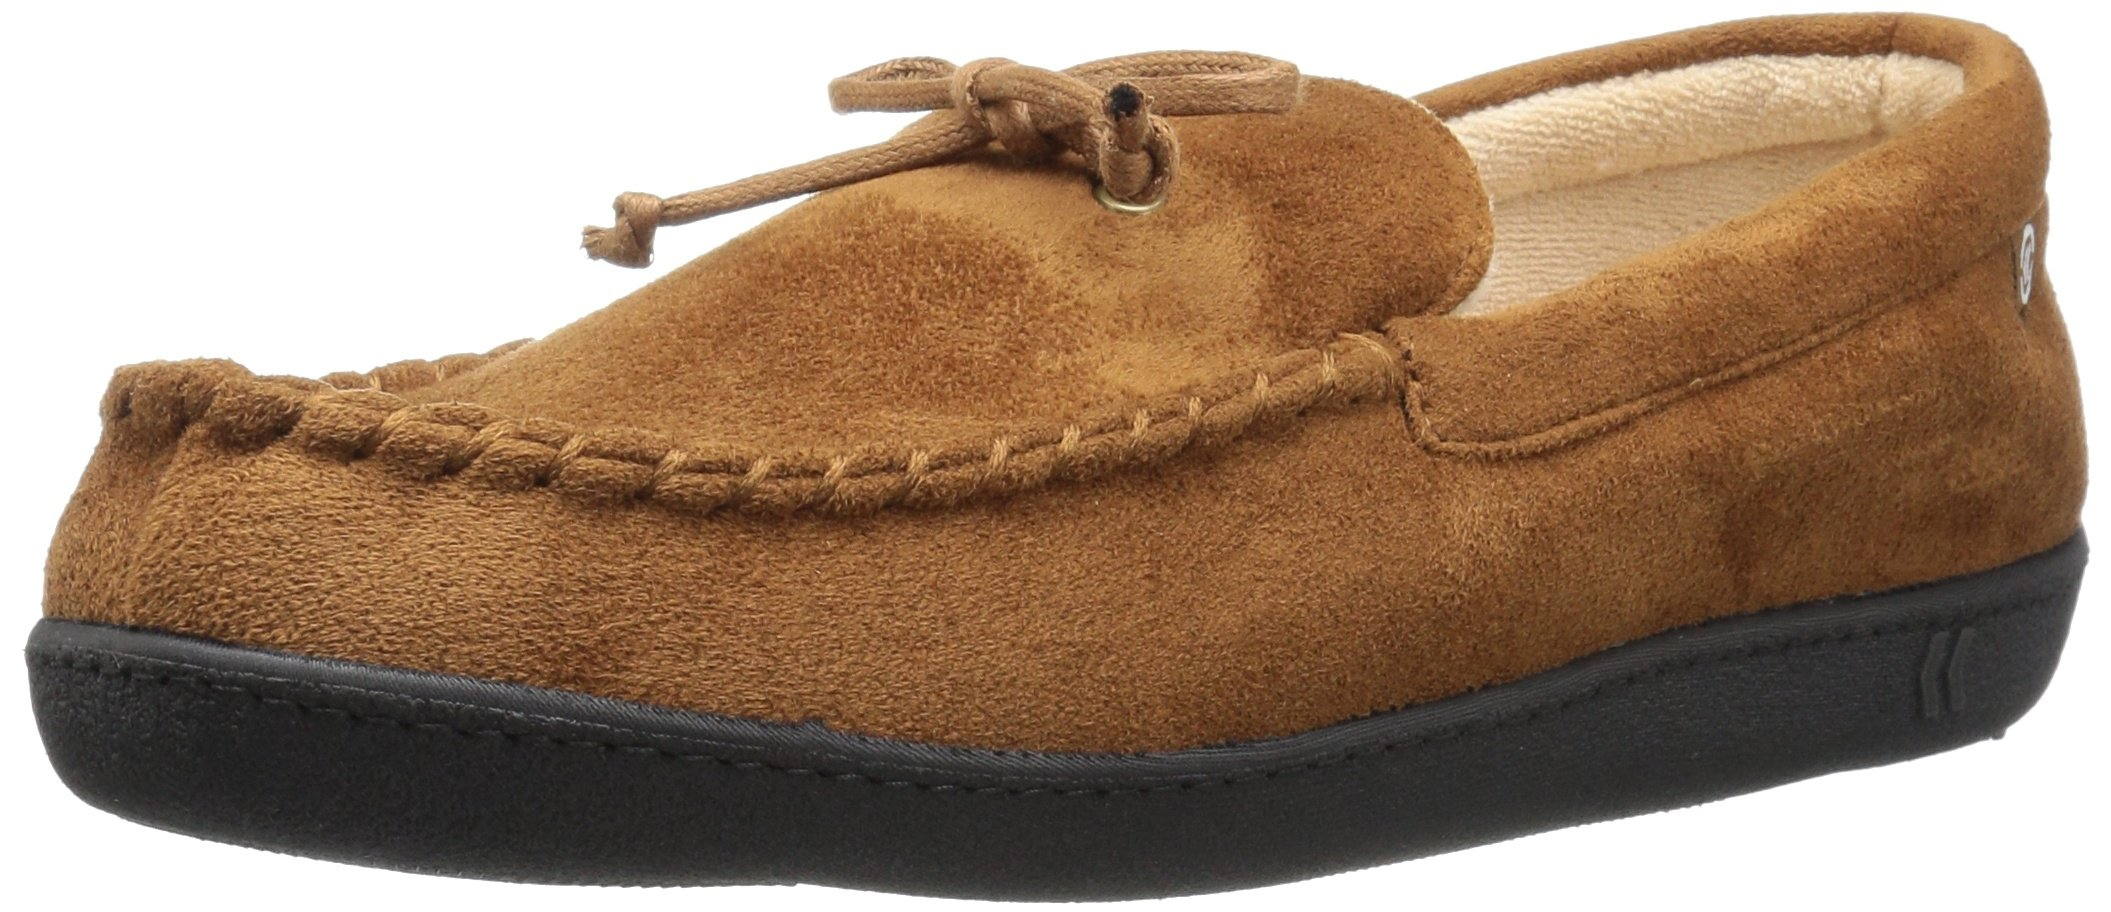 ISOTONER Men's Whipstitch Gel Infused Memory Foam Moccasin, Cognac, X-Large/11-12 M US by ISOTONER